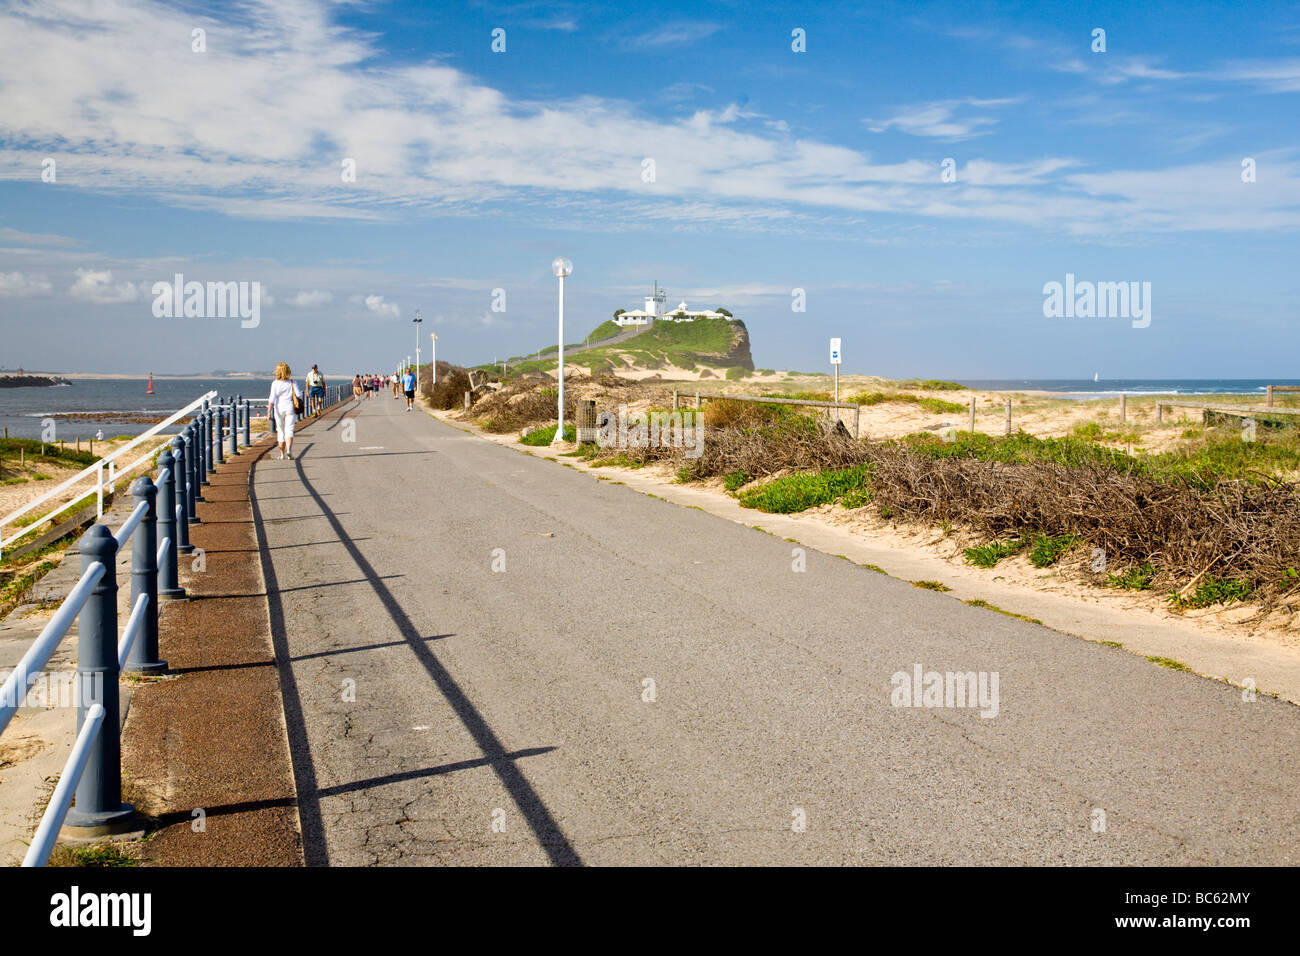 Walking out to Nobbys Head along the path next to the Beach, Newcastle, New South Wales. Australia Stock Photo